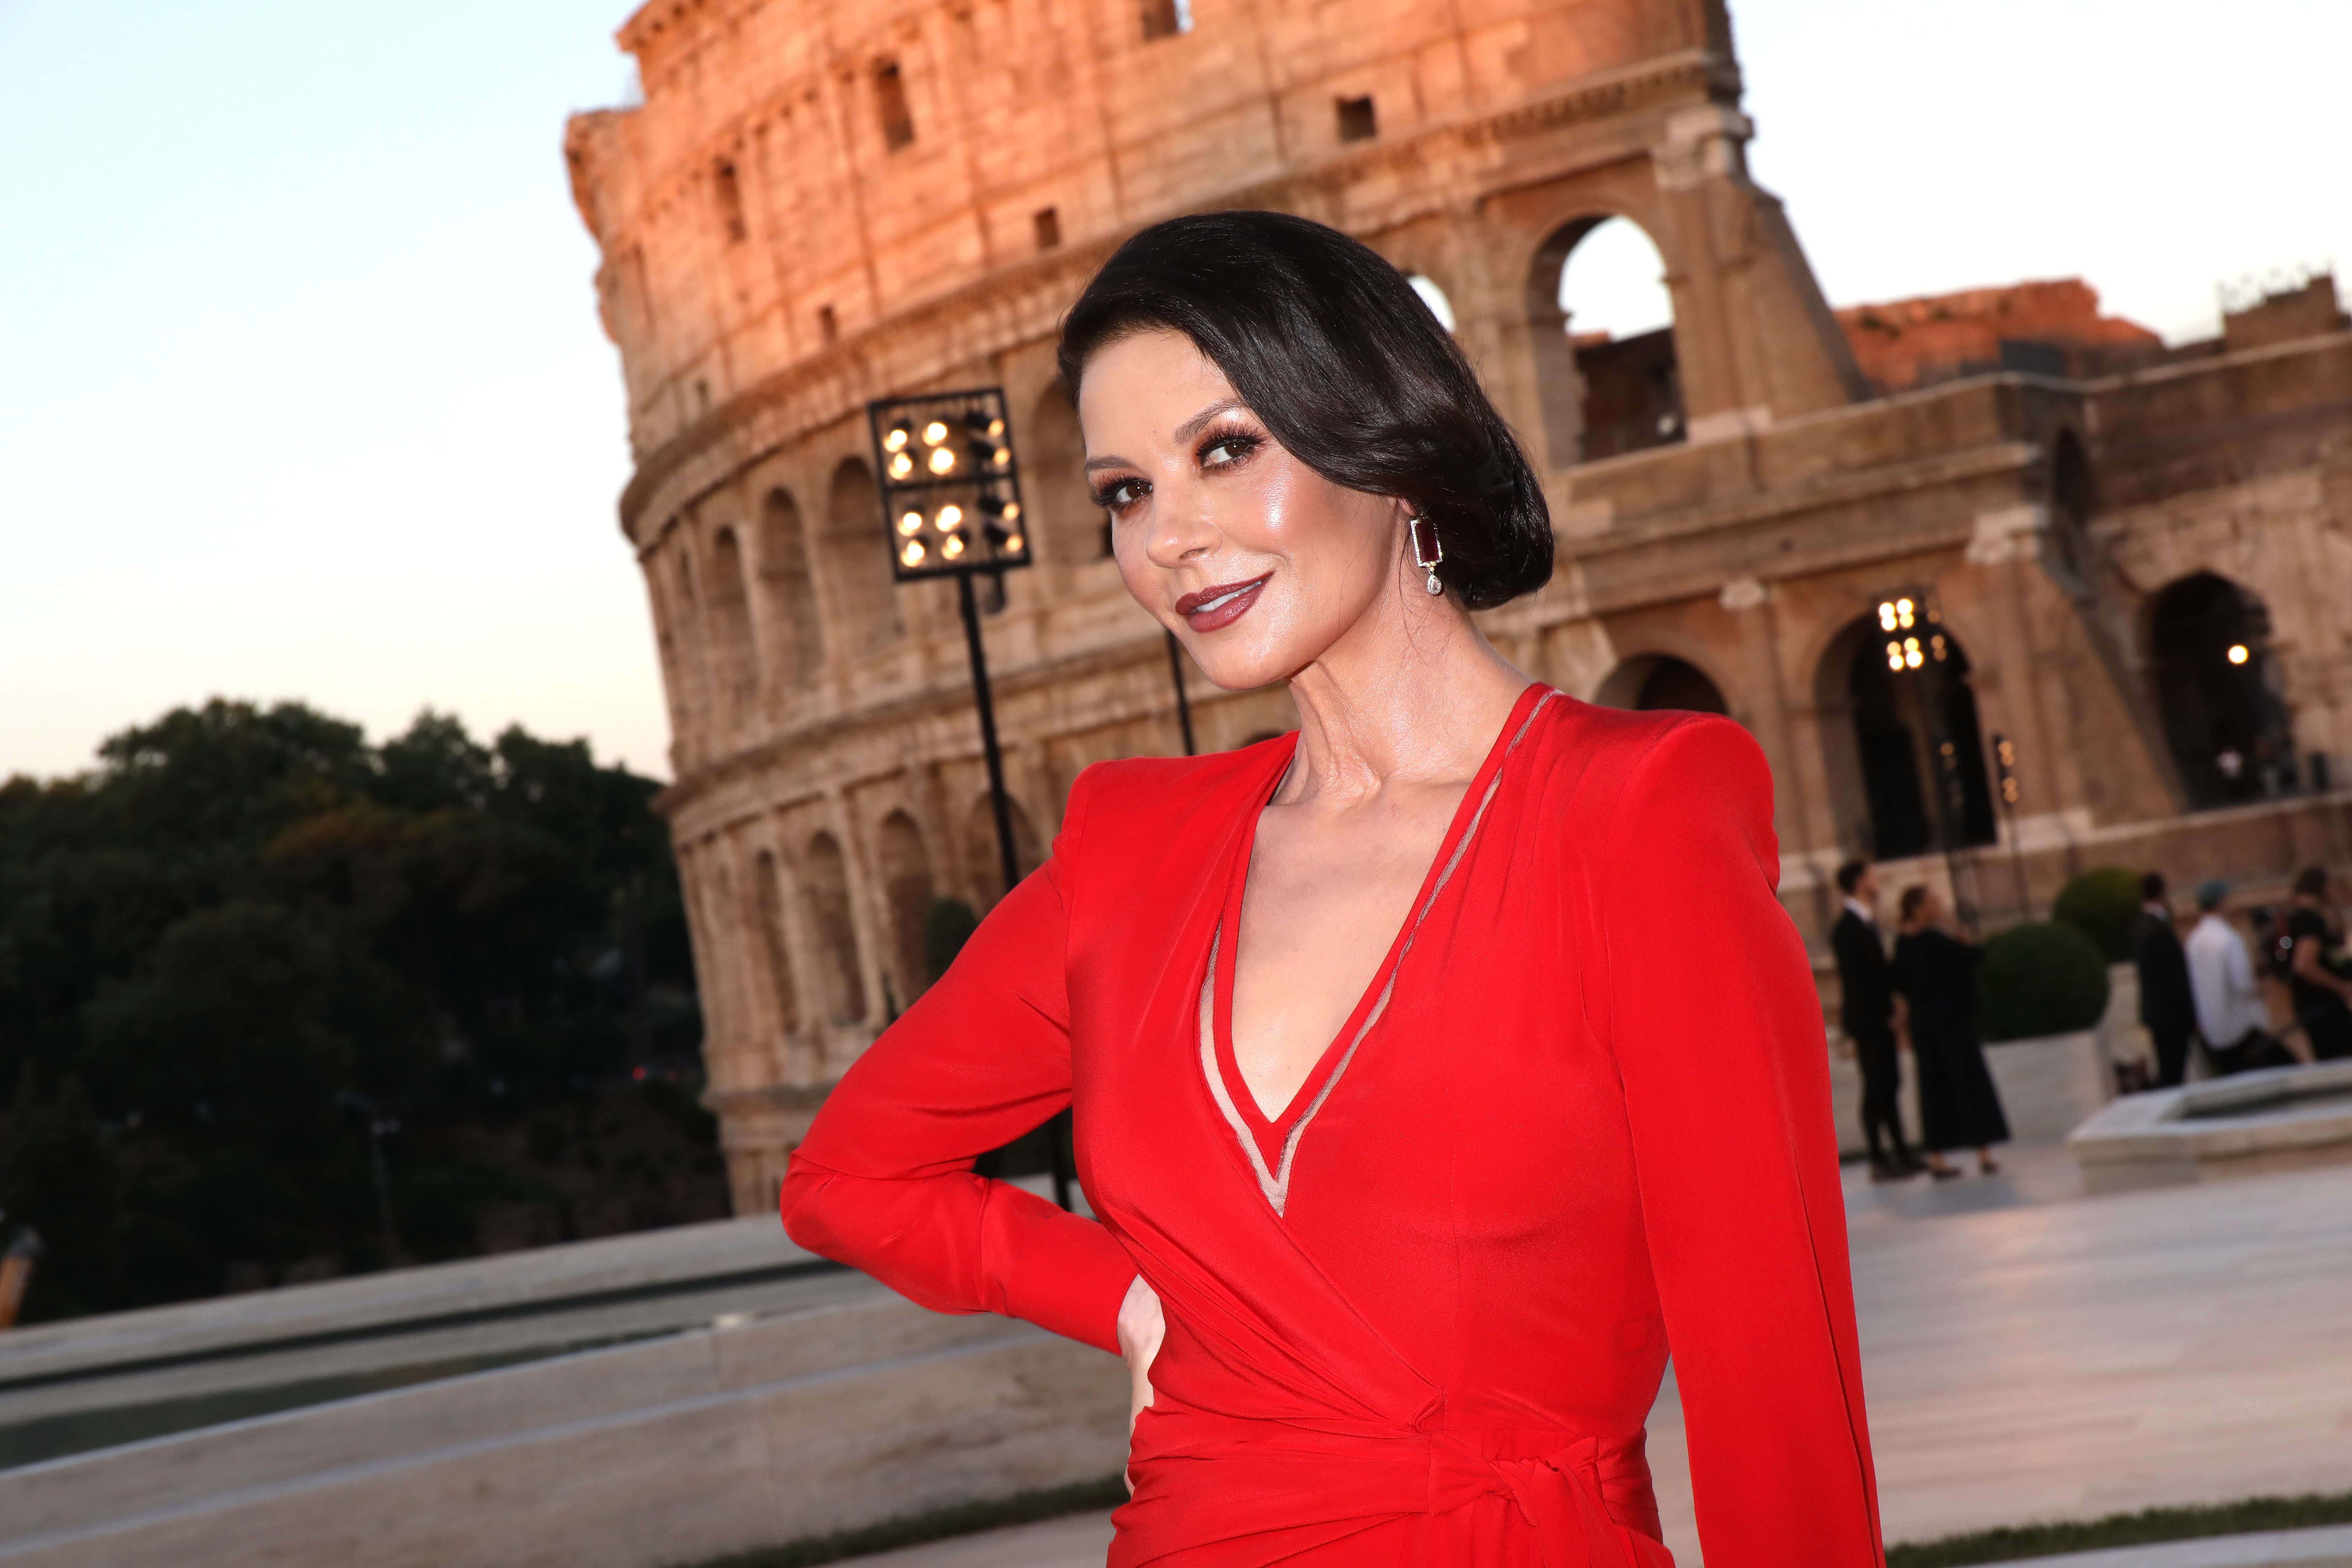 Catherine Zeta-Jones athe at Fendi Couture Fall Winter 2019/2020 in Rome, Italy   Photo: Getty Images